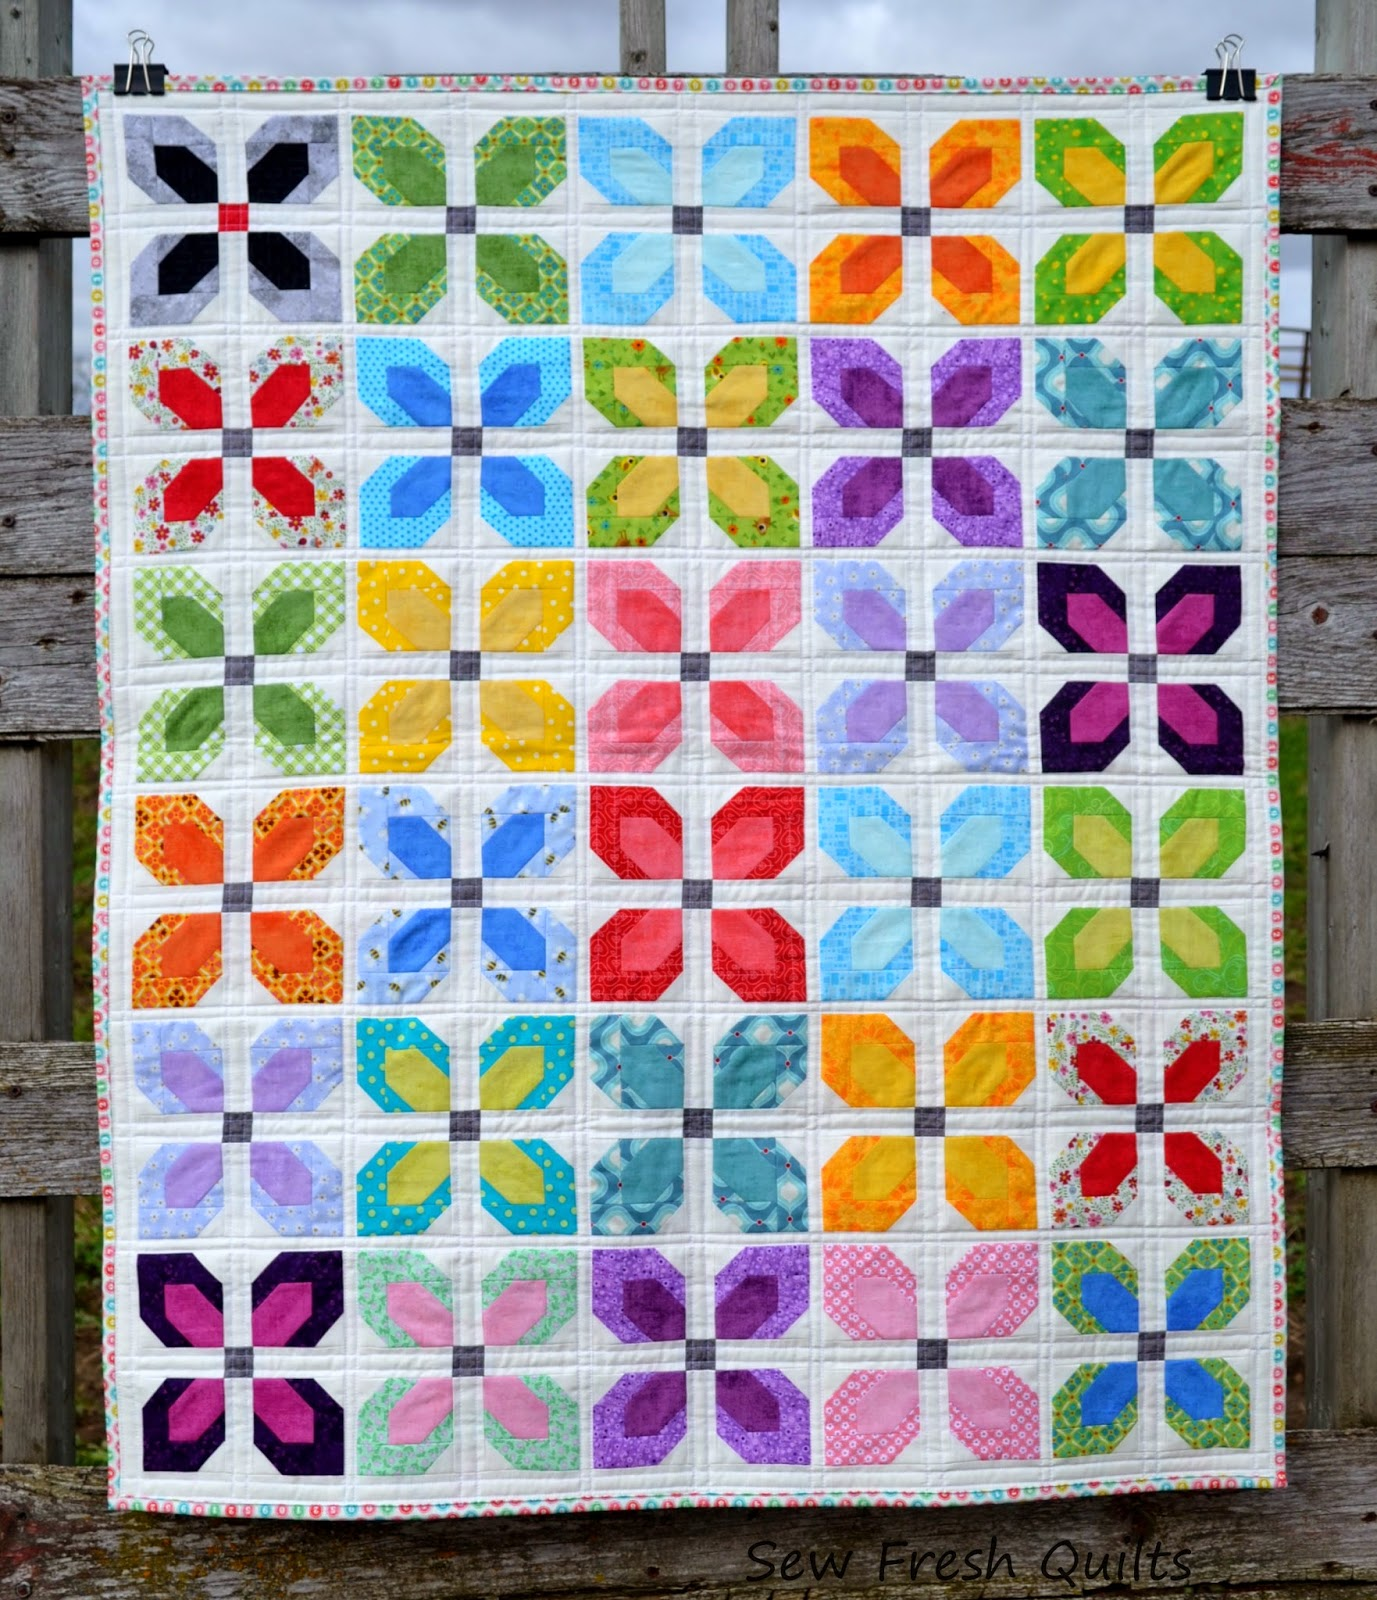 http://sewfreshquilts.blogspot.ca/2014/11/little-blooms-friday-finish.html